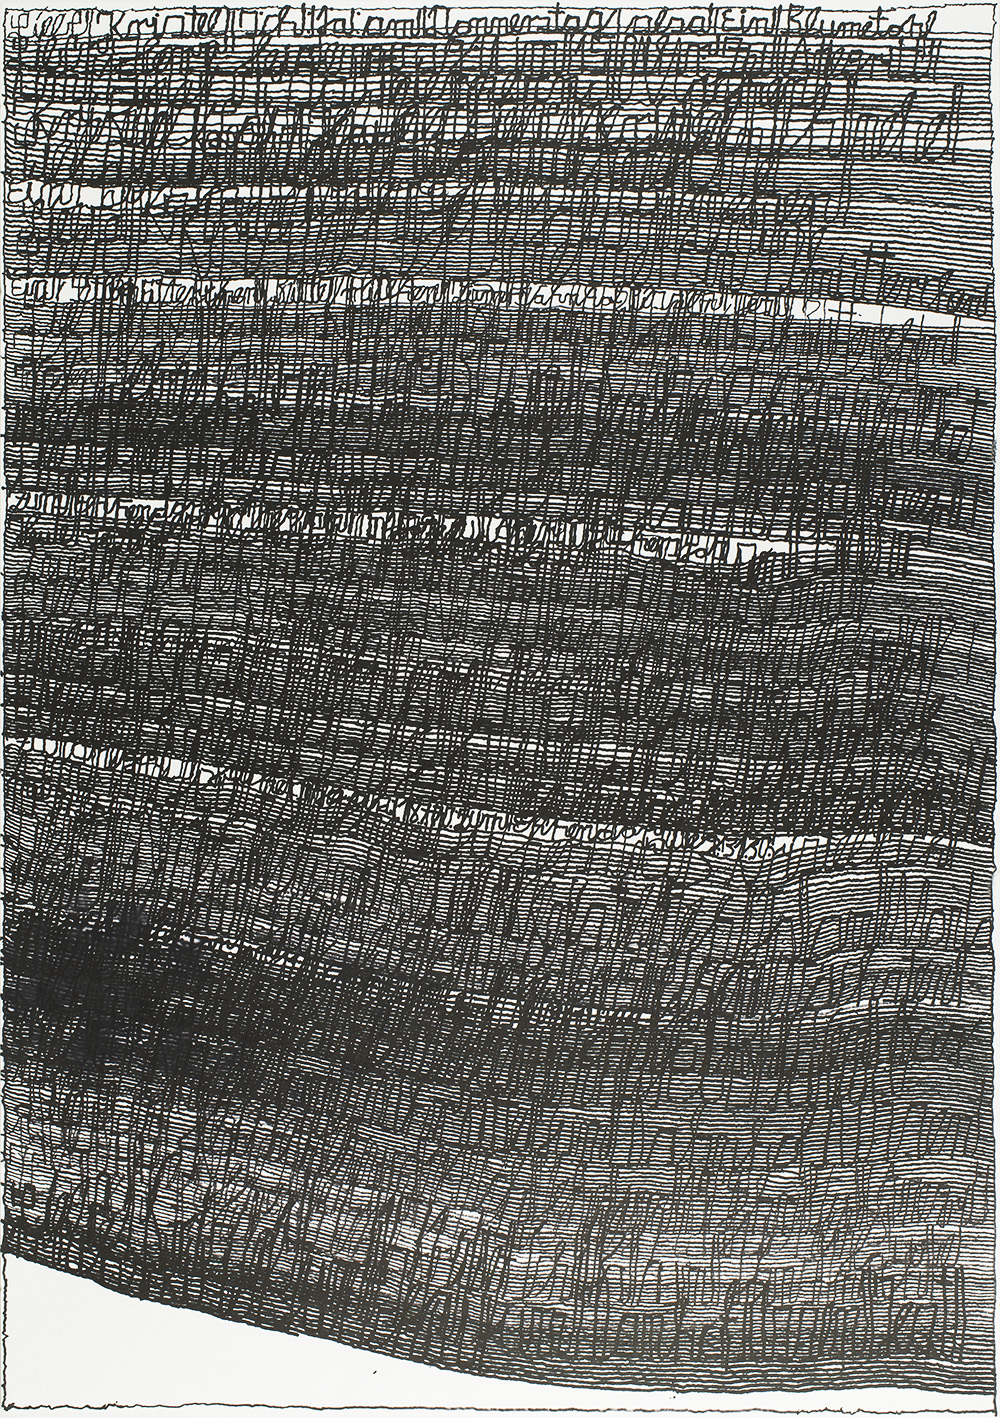 """Harald Stoffers, Brief 164, March 10th, 2012, ink on paper, 39.25"""" x 27.5"""", image courtesy Cavin Morris Gallery"""